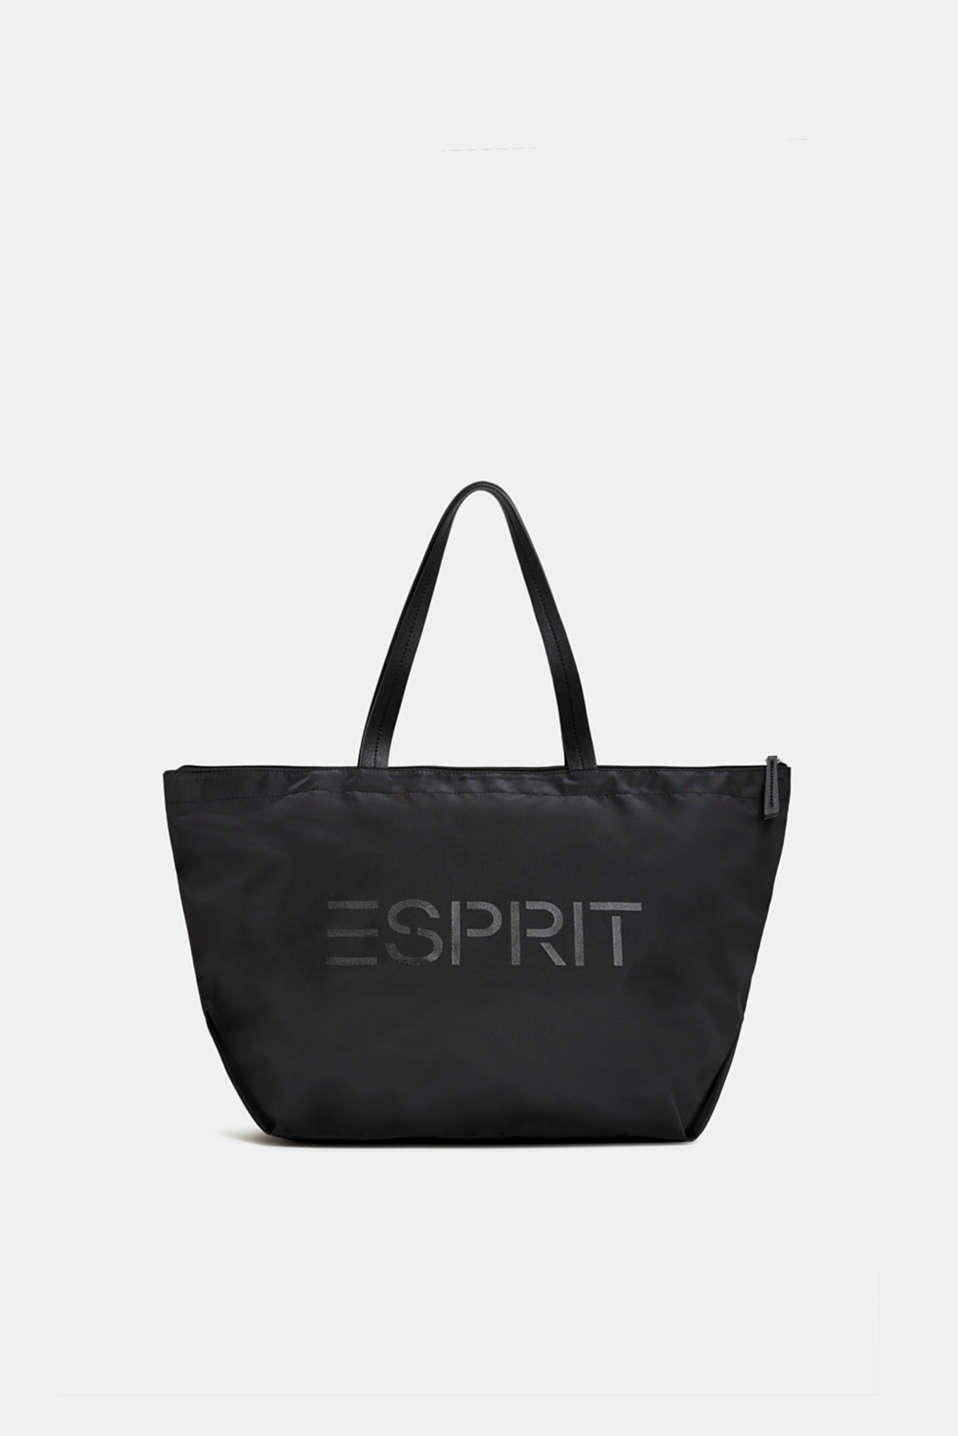 Esprit - Bolso shopper de nailon con logotipo estampado